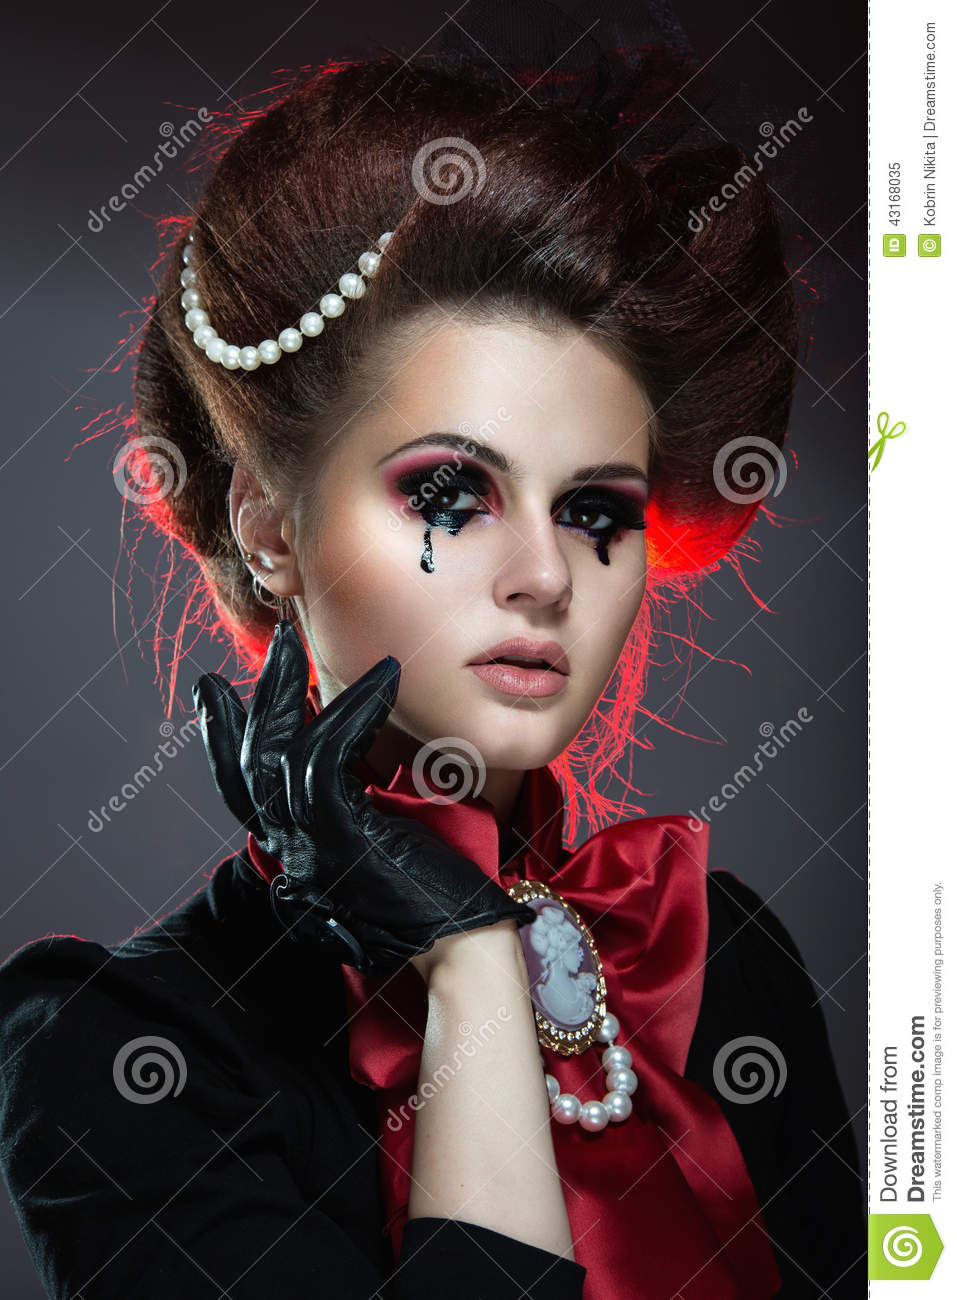 Girl In Gothic Art Style People